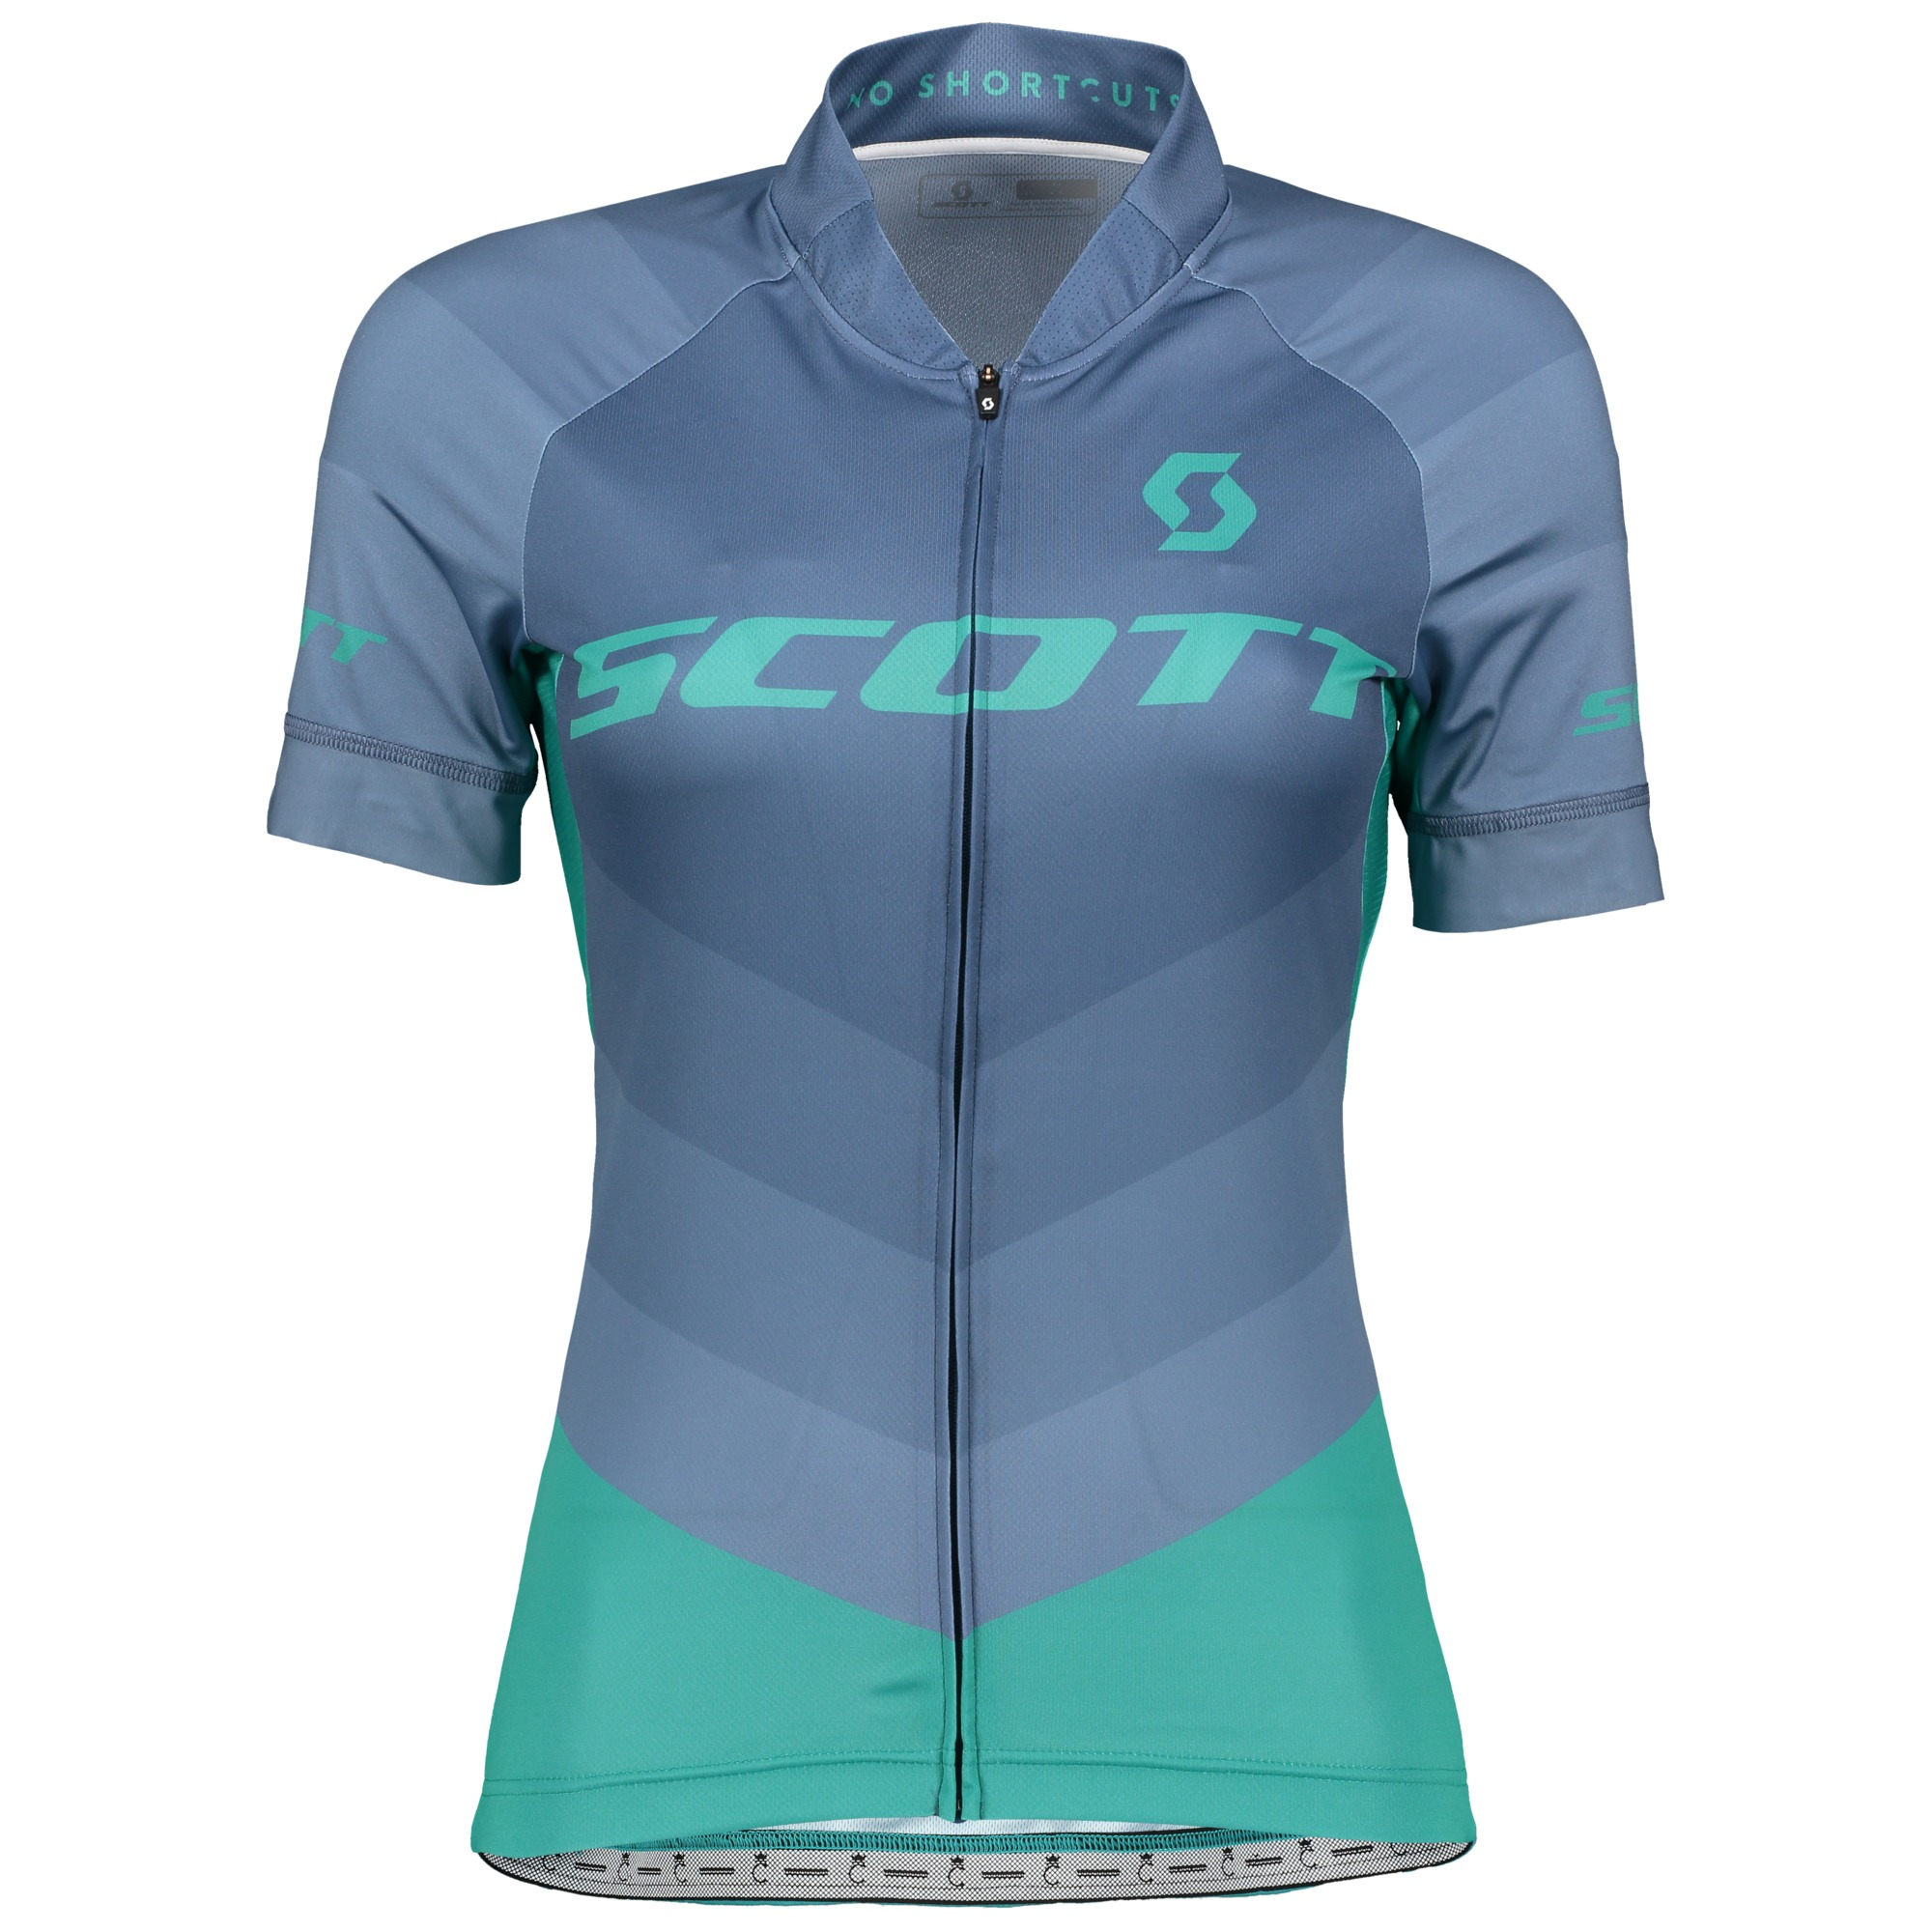 Maillot para mujer RC Pro s/sl SCOTT